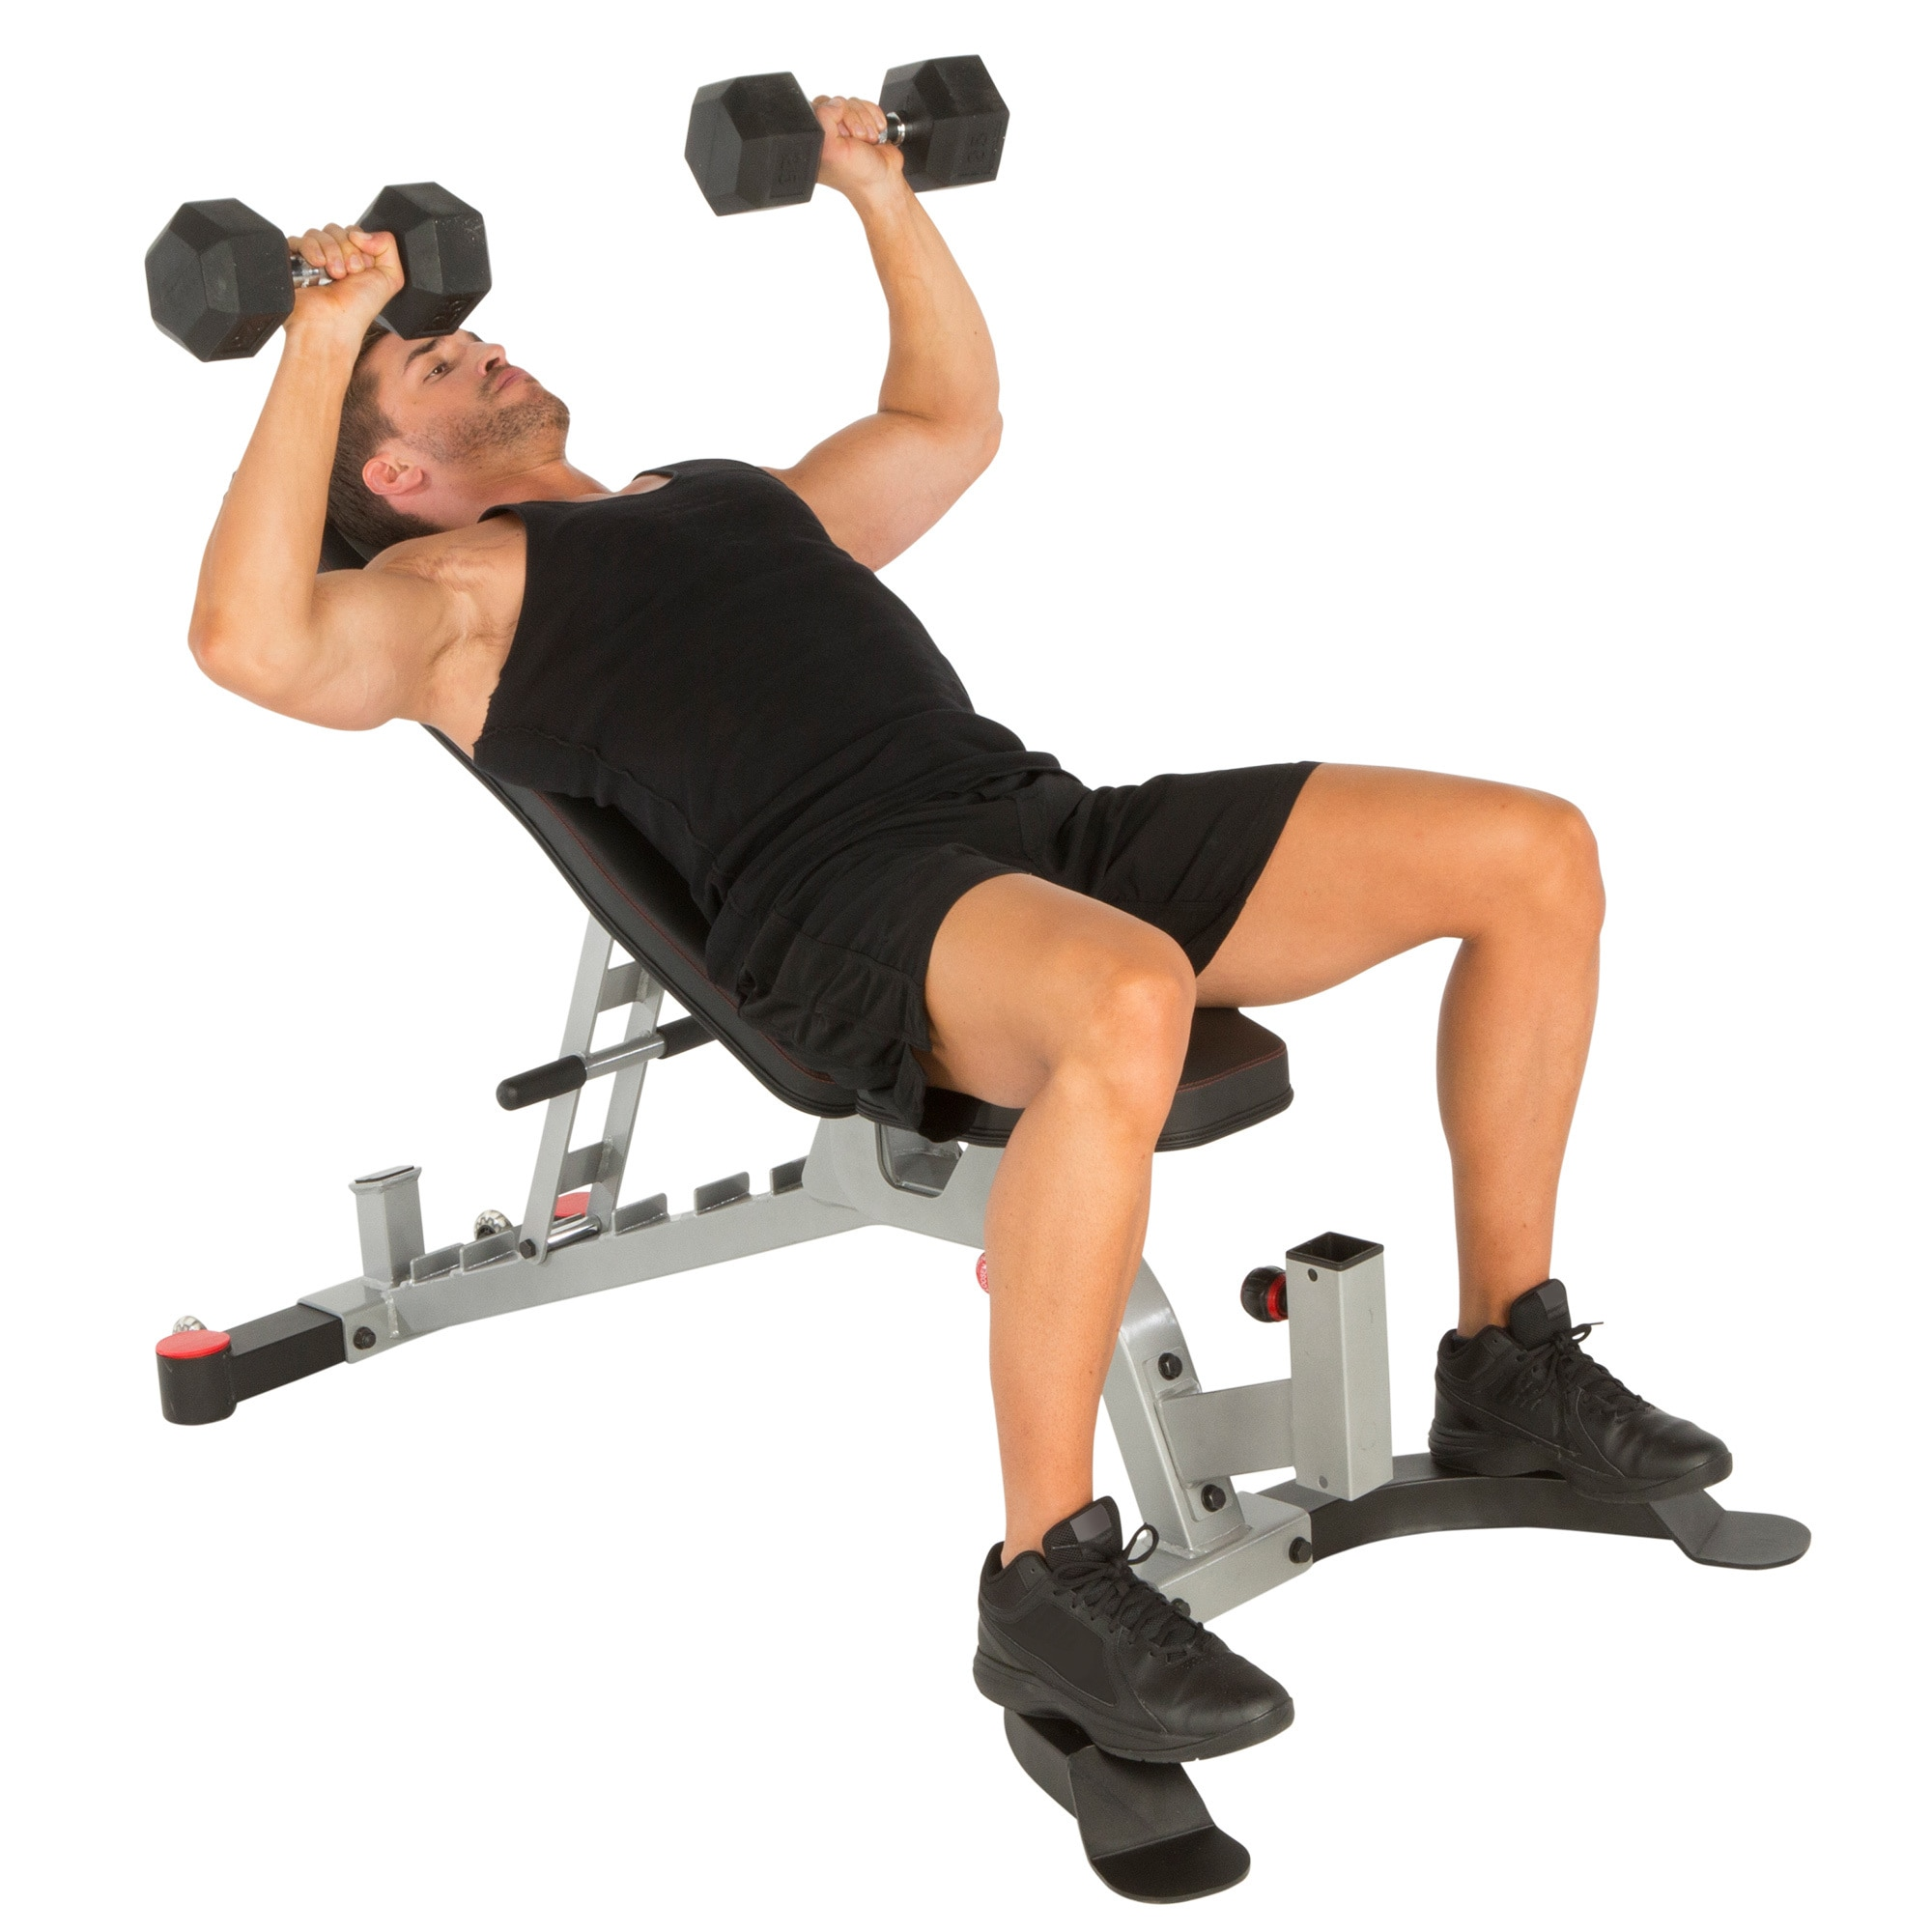 com bar product gym xr s gold bench walmart olympic weight reviews